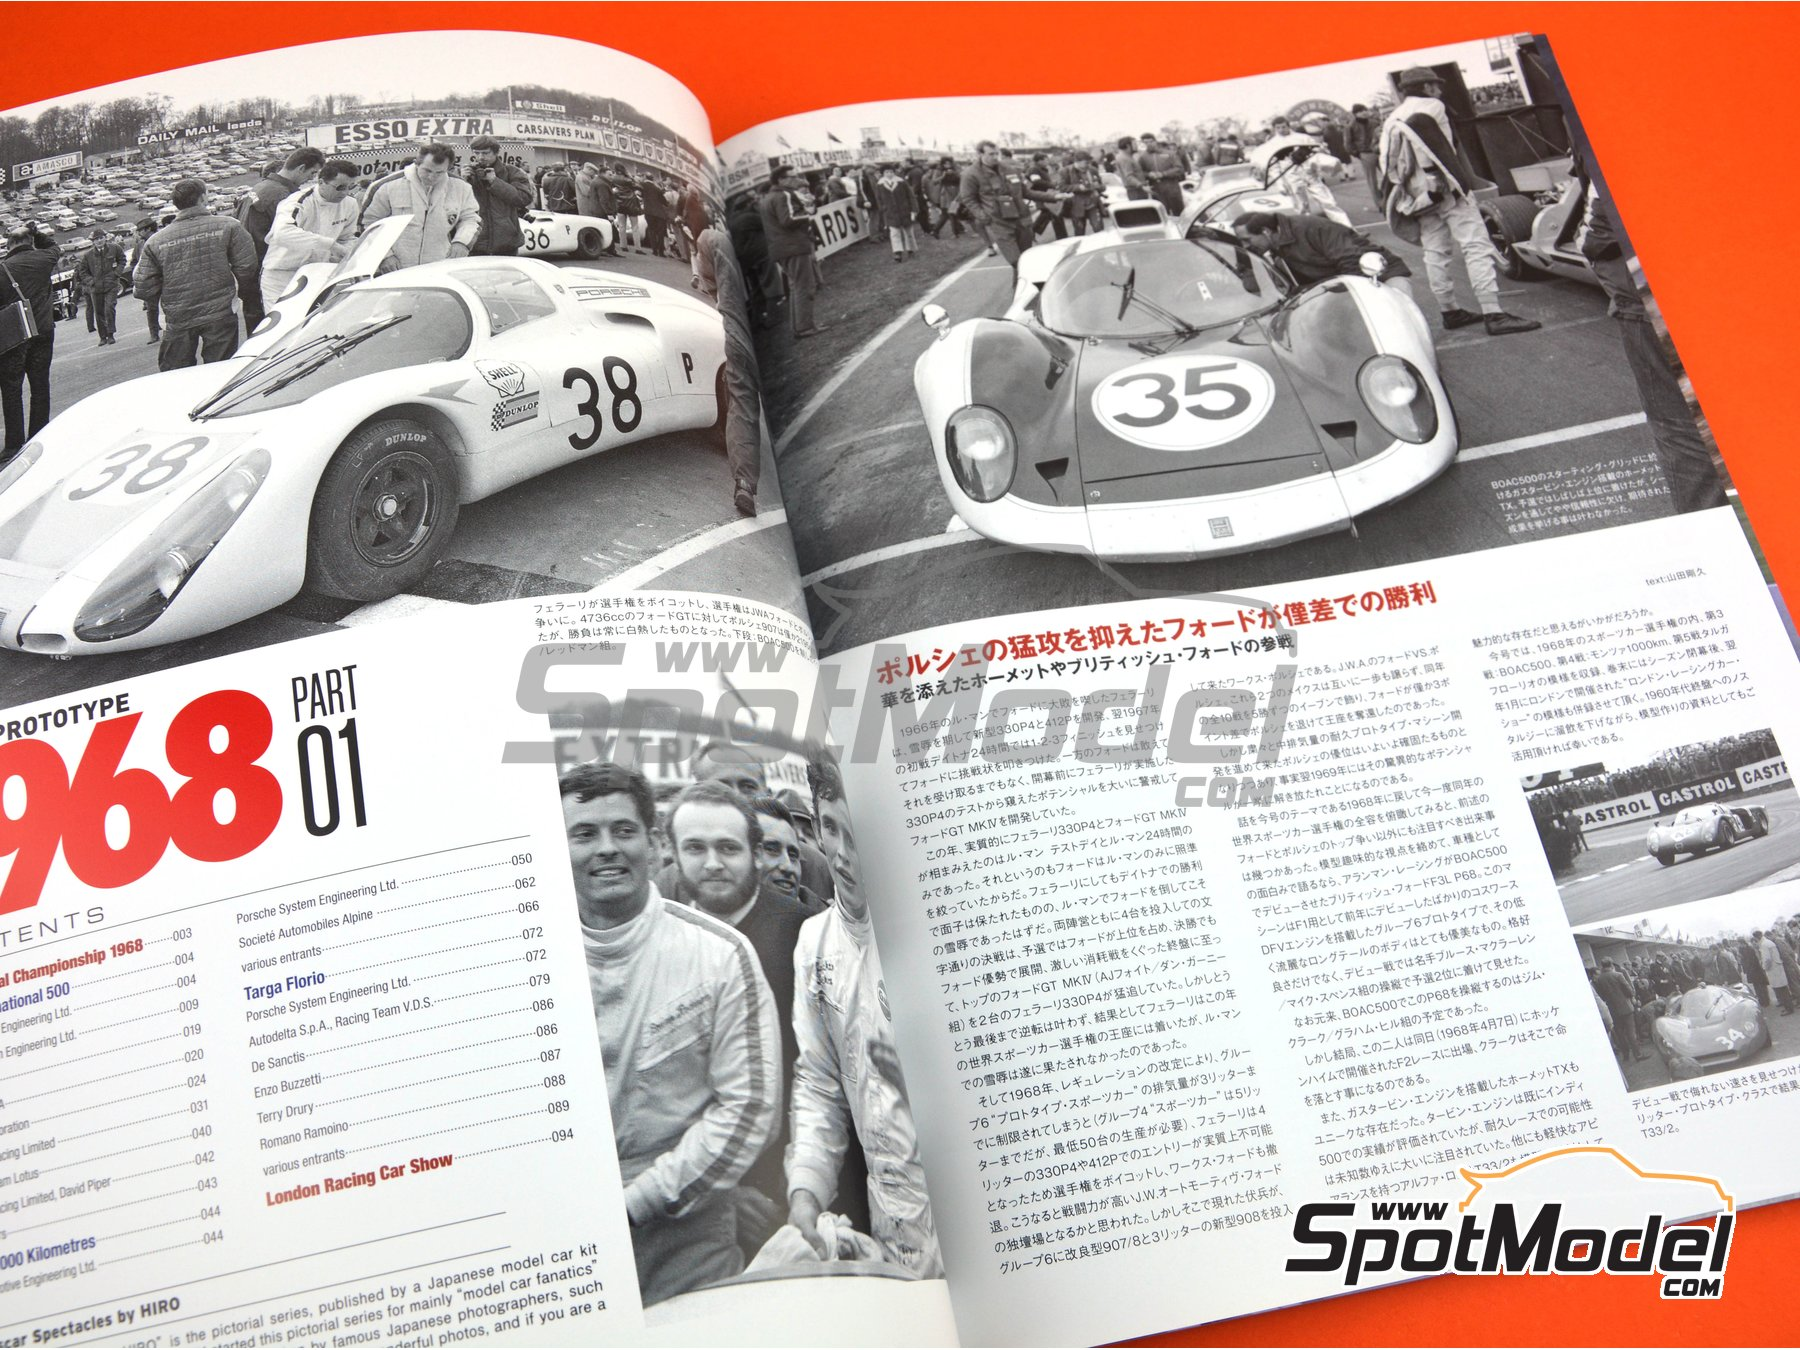 Image 2: JOE HONDA Sportcar Spectacles by Hiro: Sport Prototypes - Part 1 - 1000 Kms Monza, Targa Florio, 500 Kms BOAC Sports Race 1968 | Reference / walkaround book manufactured by Model Factory Hiro (ref. MFH-SS013)